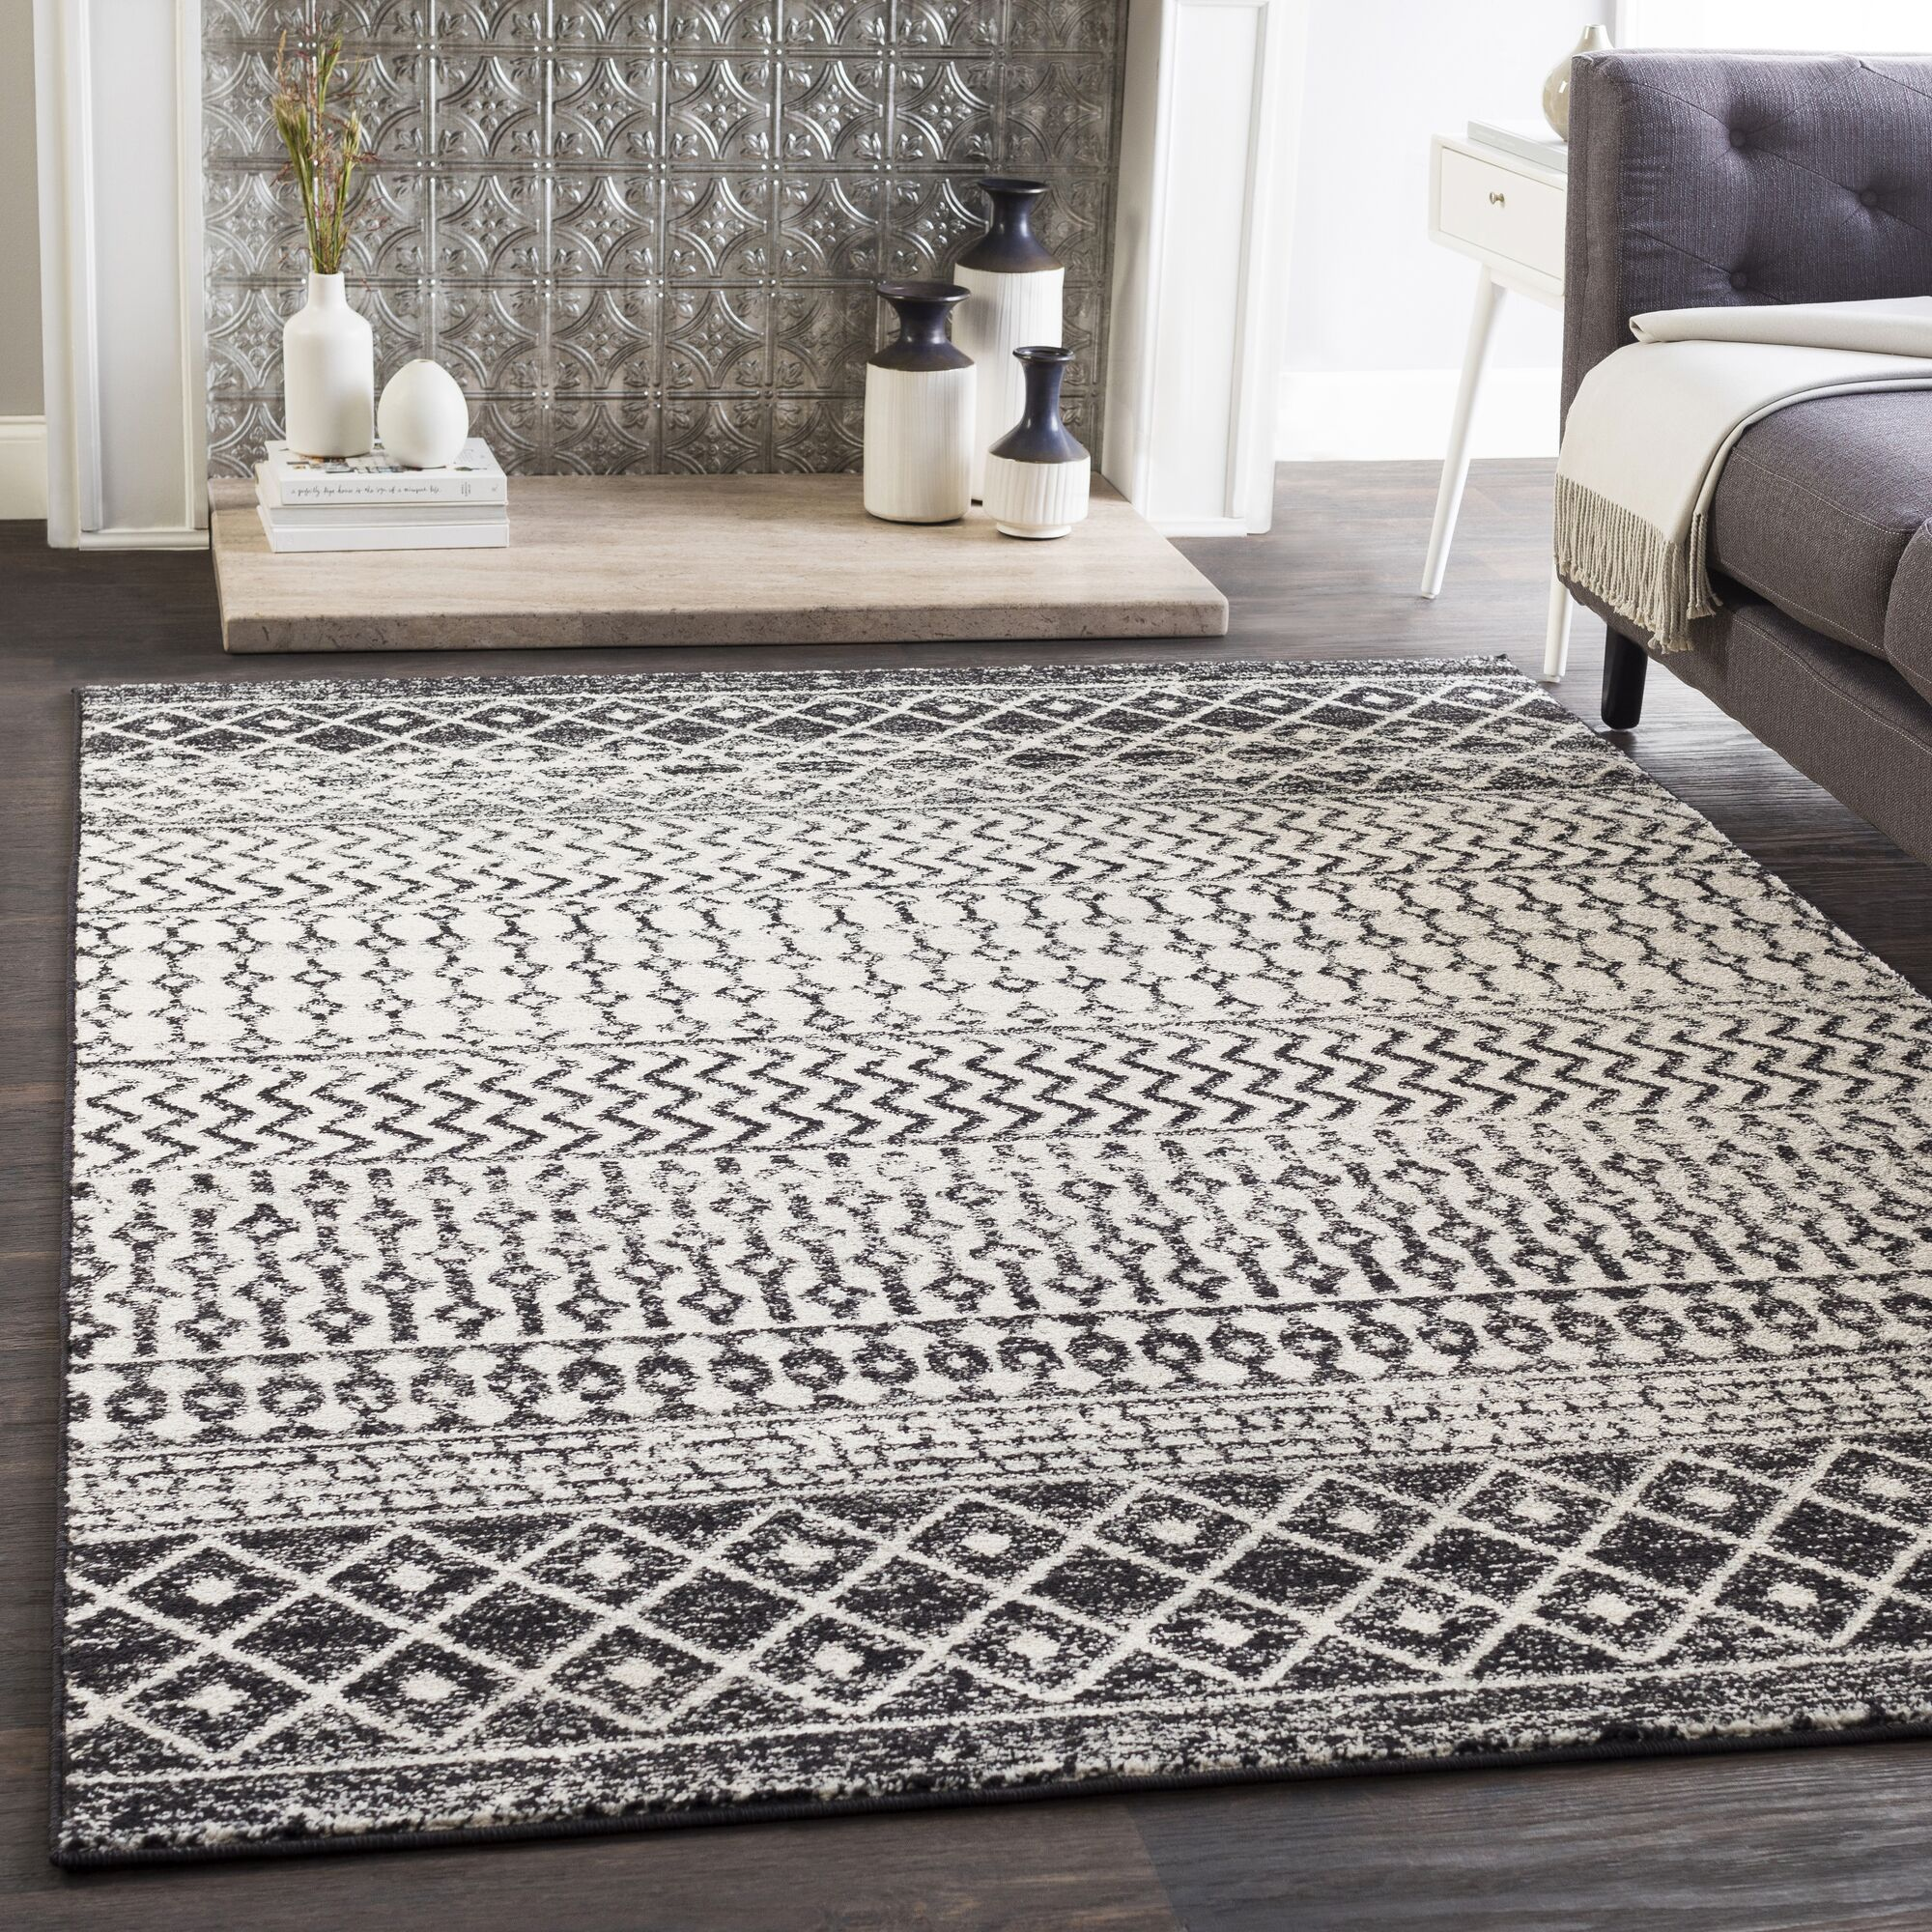 Kreutzer Bohemian Charcoal/Ivory Area Rug Rug Size: Rectangle 7'10